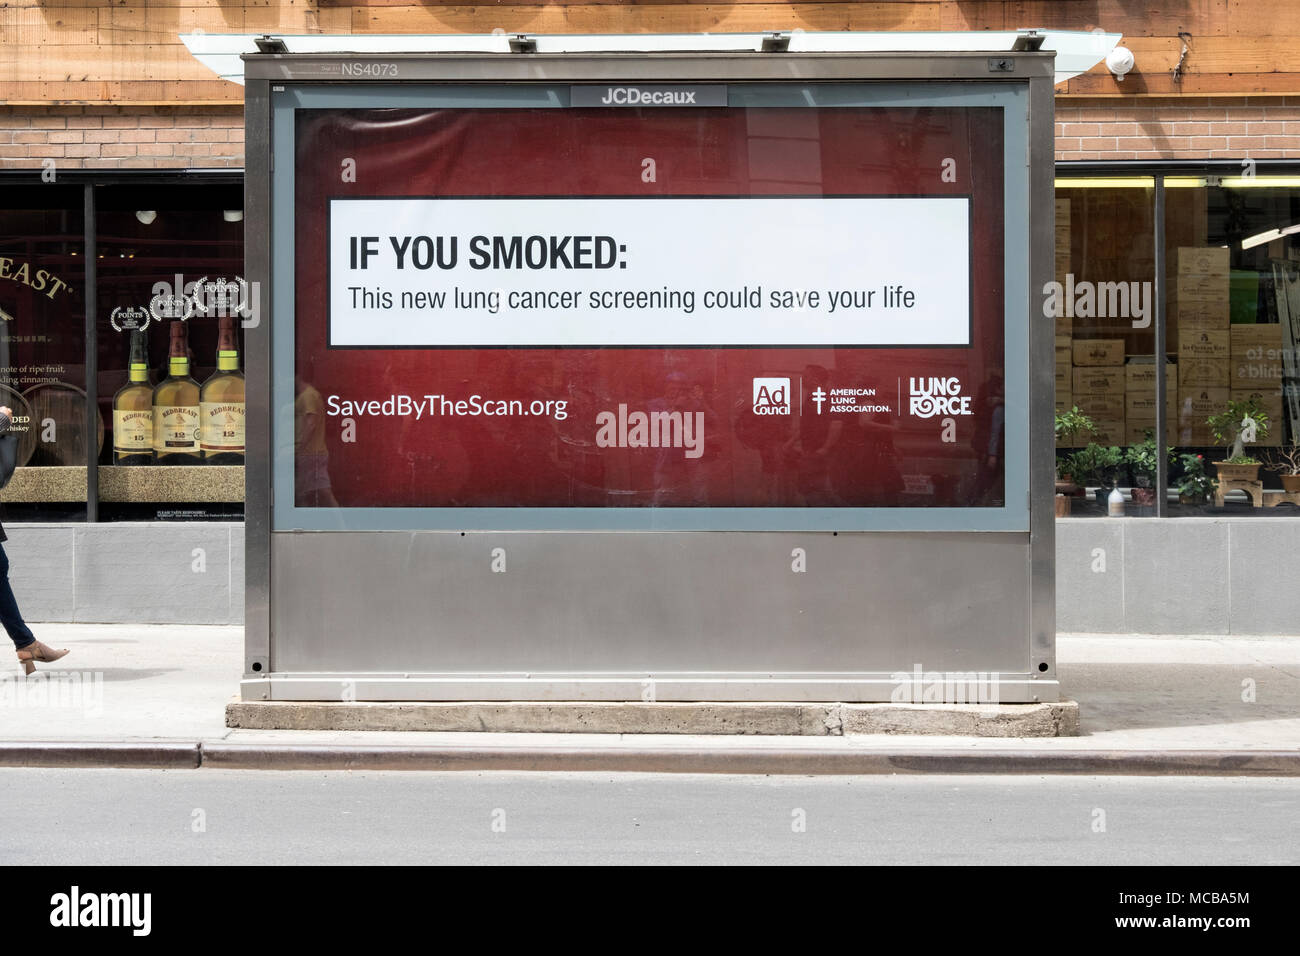 A public health warning sign to smokers & former smokers on the back of a newspaper kiosk on Broadway in Greenwich Village, Manhattan, New York City. Stock Photo